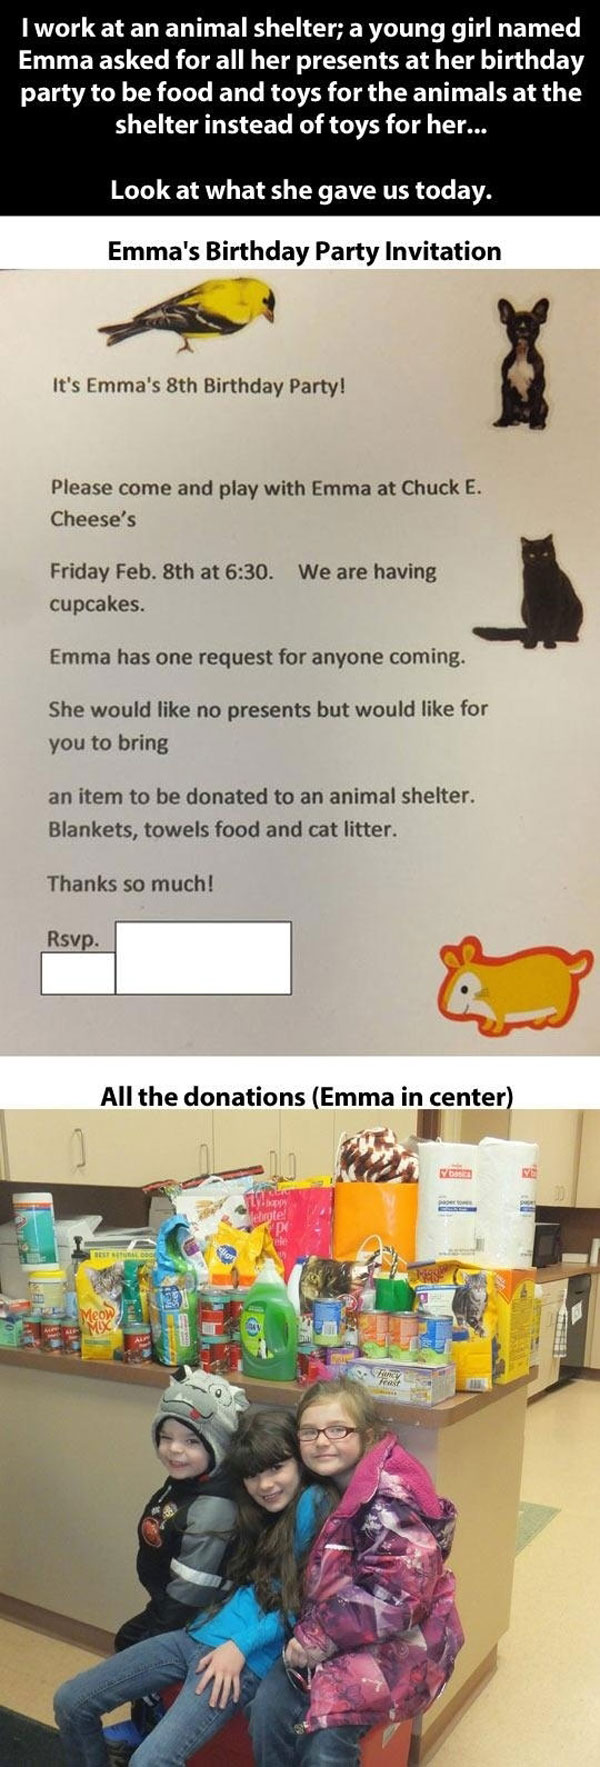 donate animal shelter